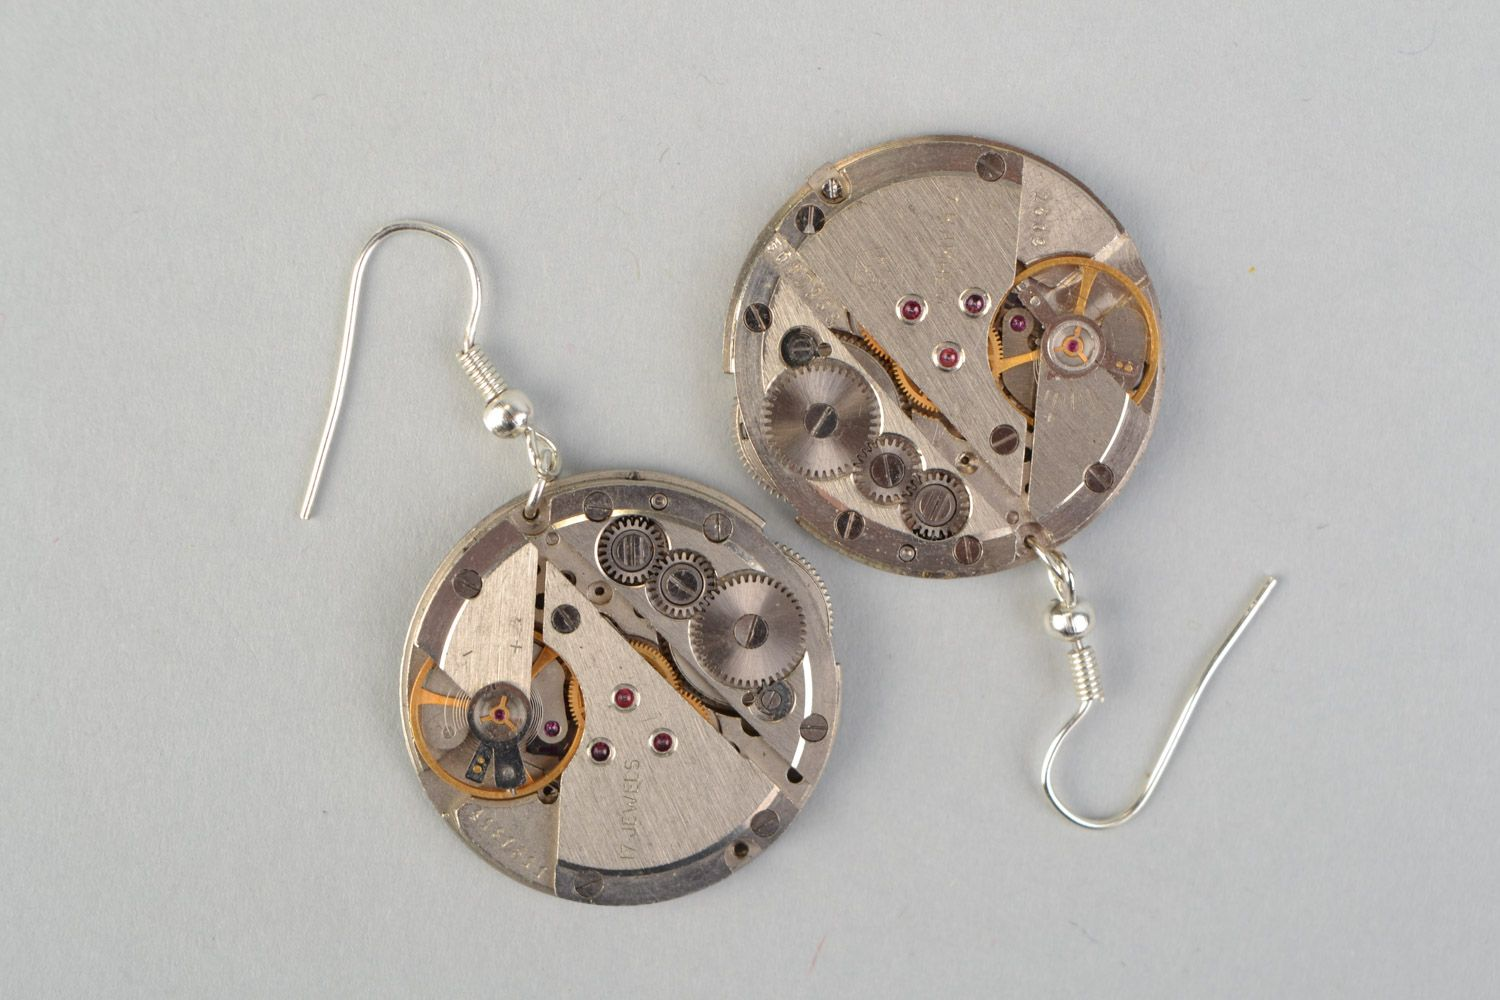 steampunk earrings Handmade designer round metal earrings in steampunk style with clock mechanism  - MADEheart.com